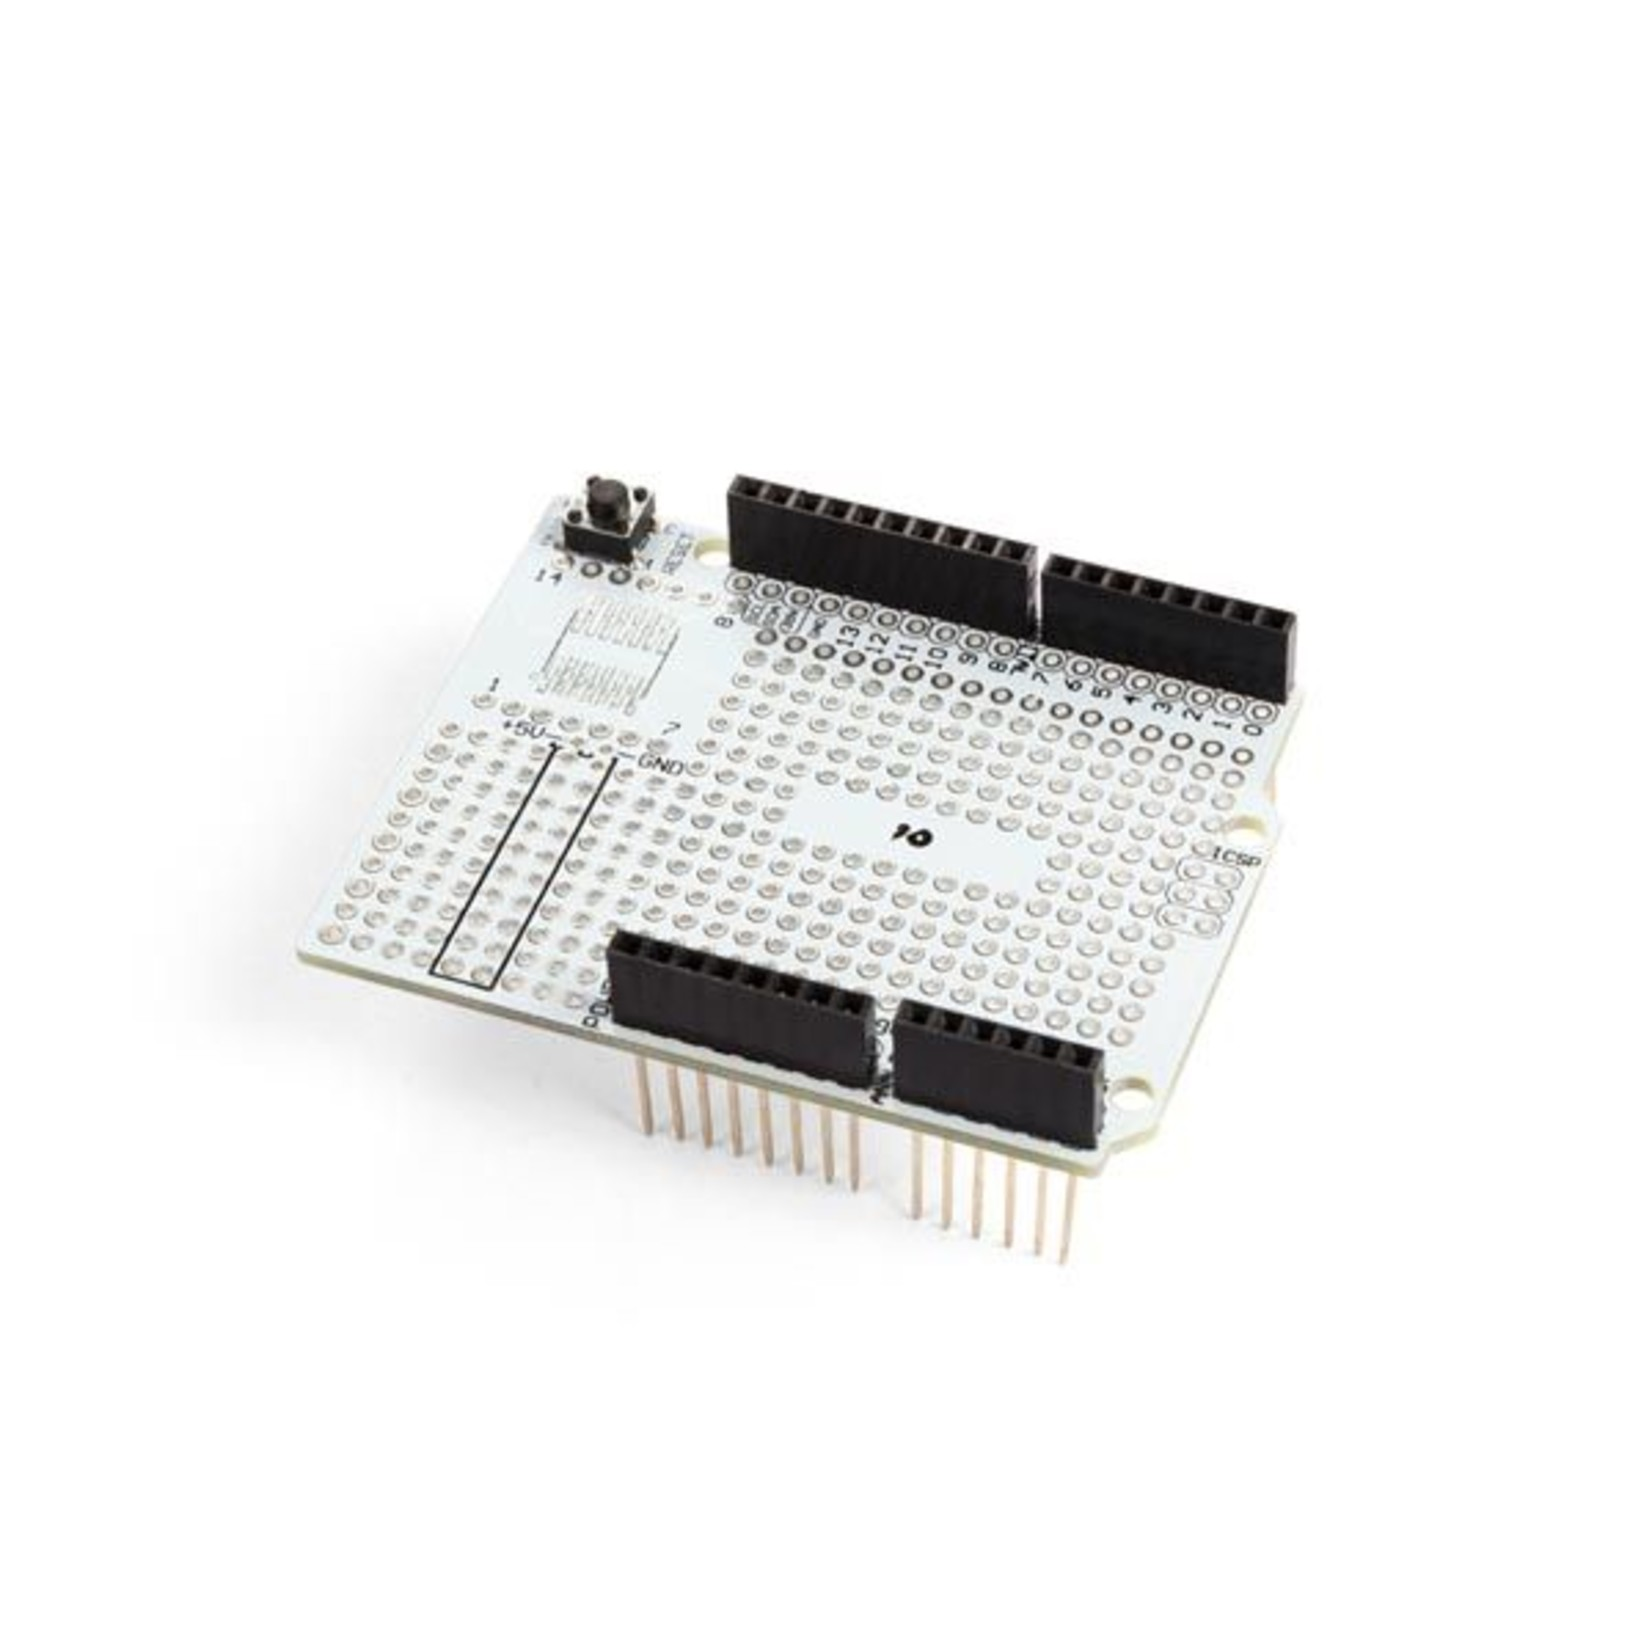 Velleman Expansion board for ARDUINO® UNO R3